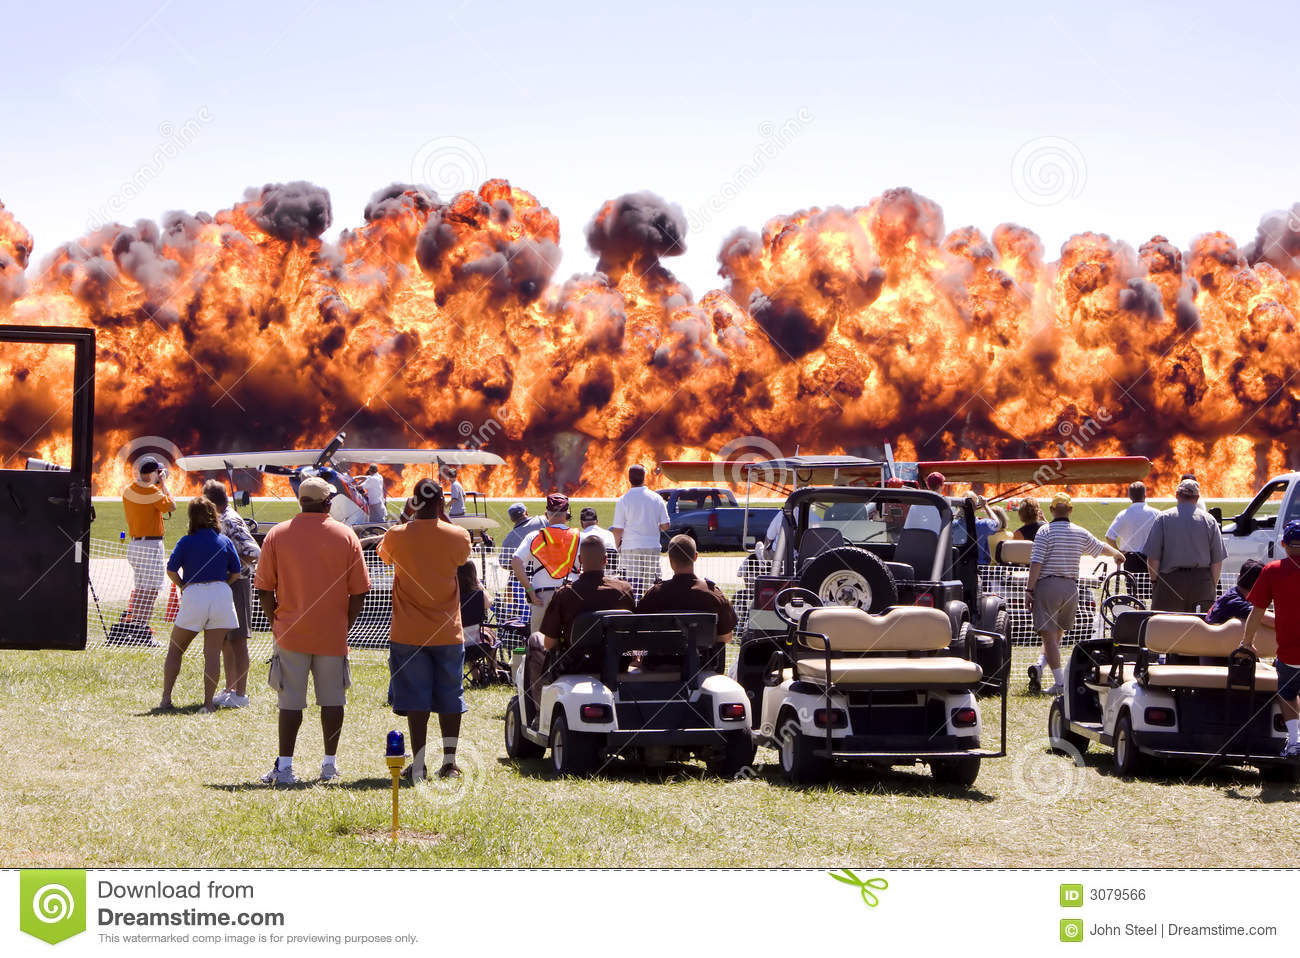 Airshow fire